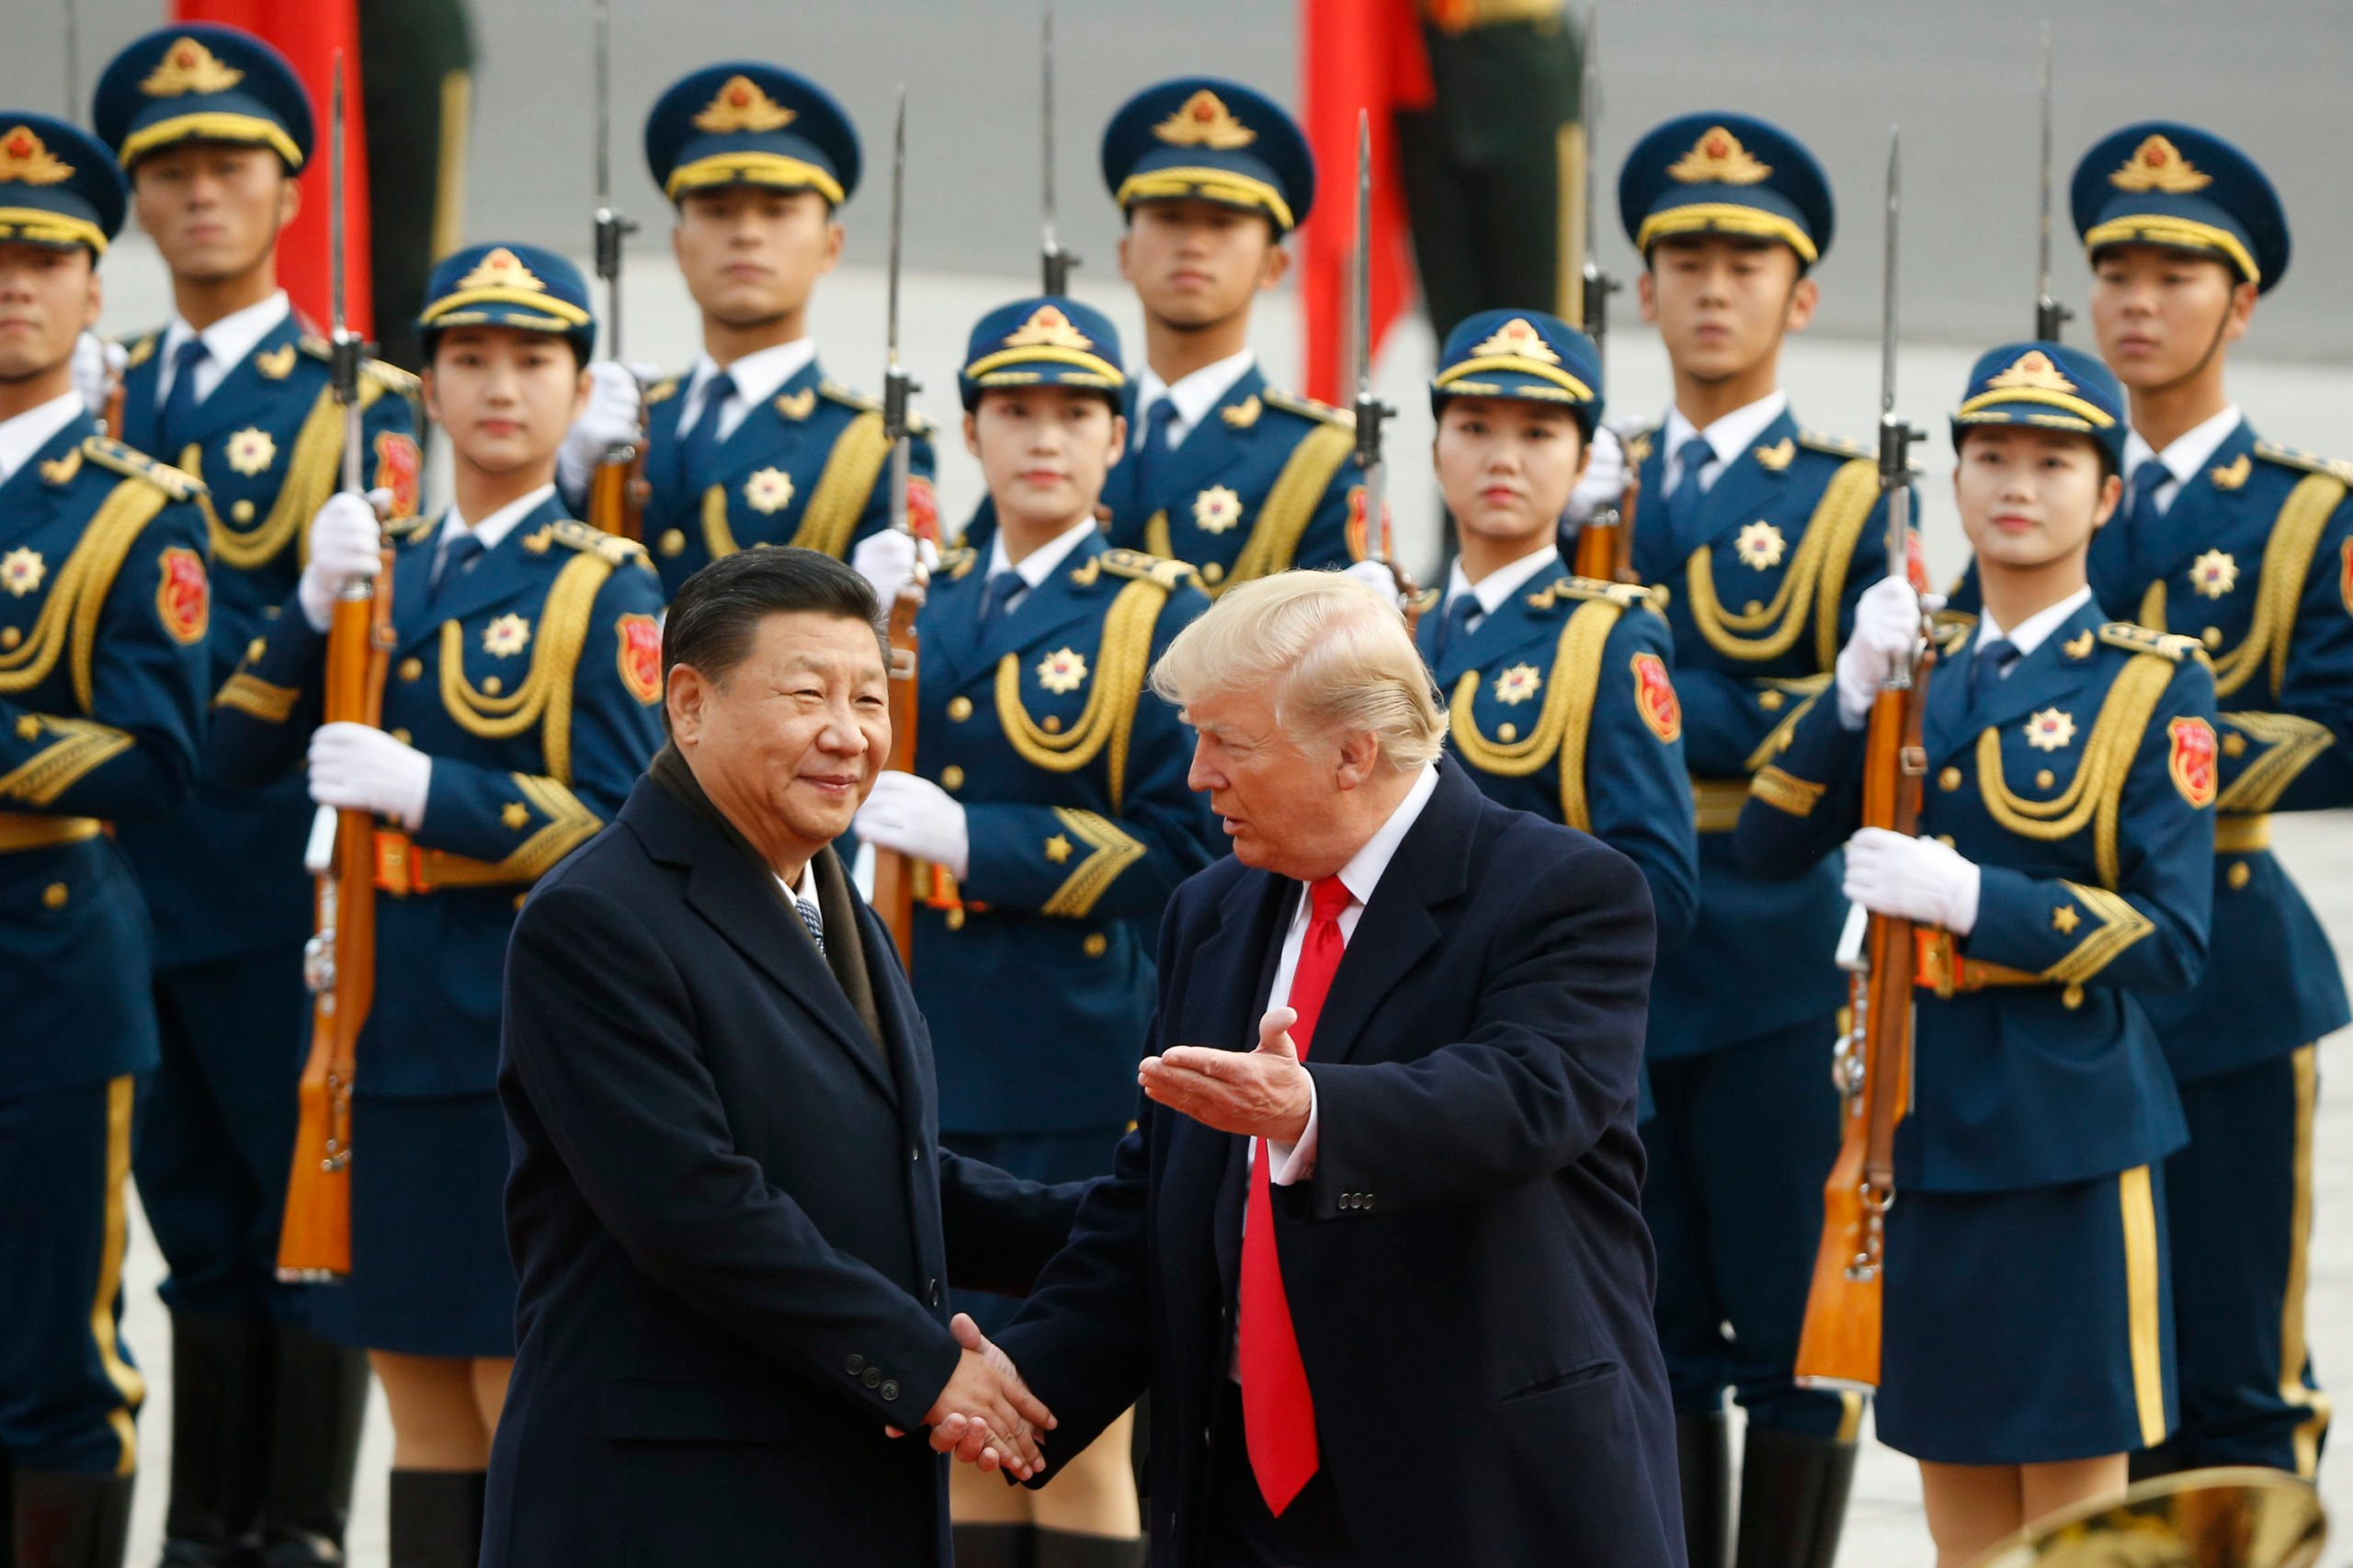 U.S. President Donald Trump takes part in a welcoming ceremony with China's President Xi Jinping on November 9, 2017 in Beijing, China. Trump is on a 10-day trip to Asia. (Photo by Thomas Peter-Pool/Getty Images)